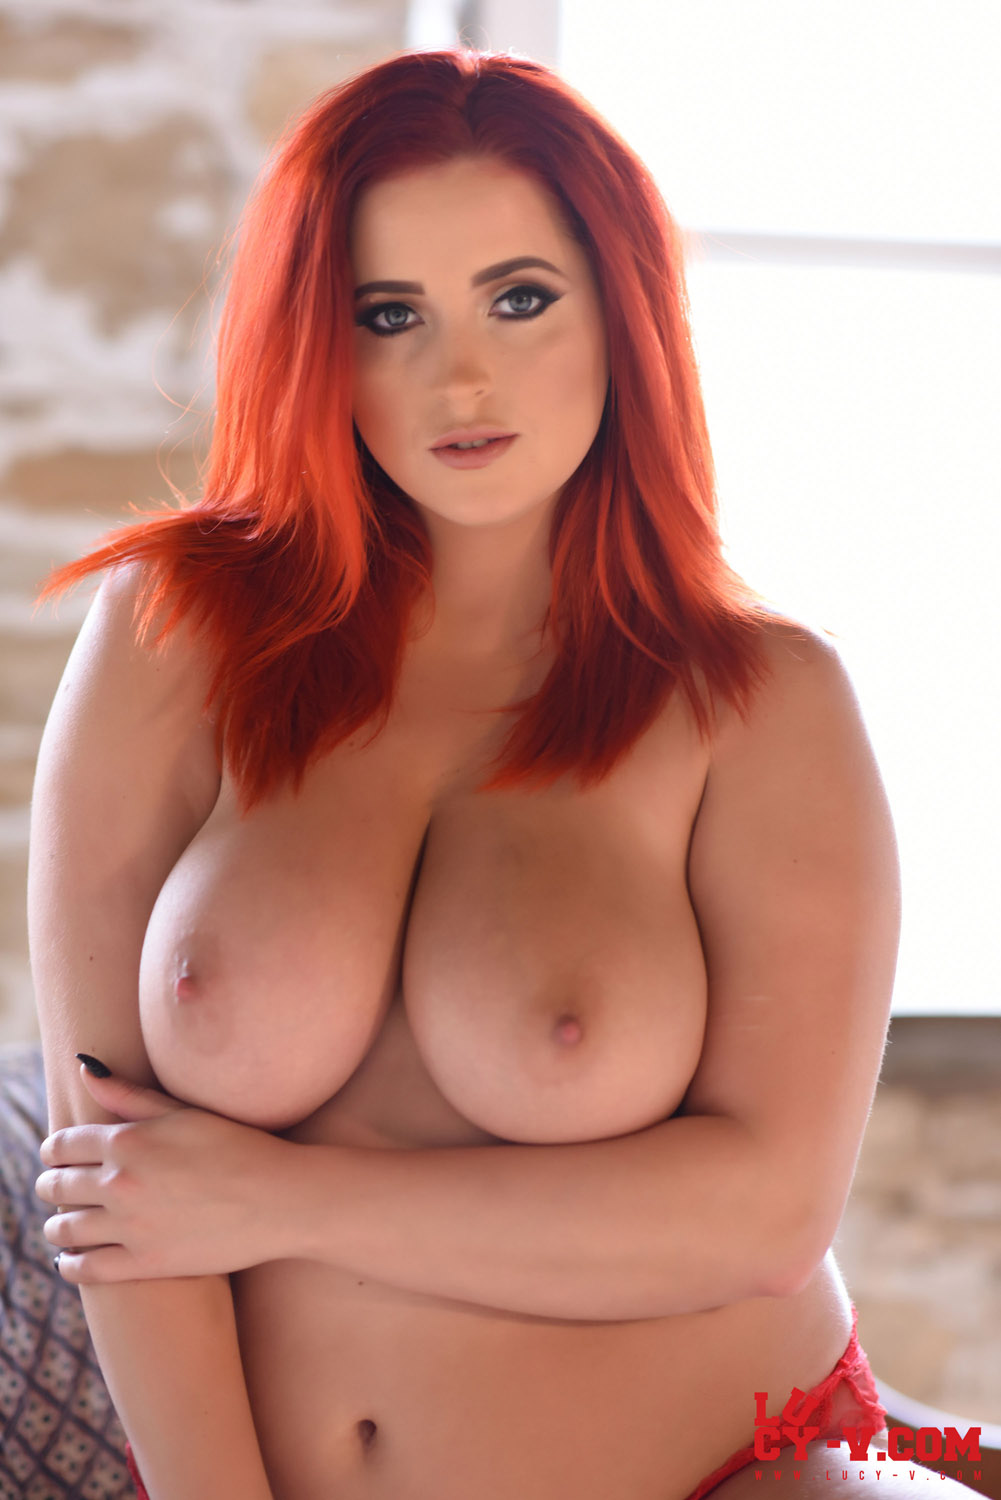 Lucy collett red lingerie something is